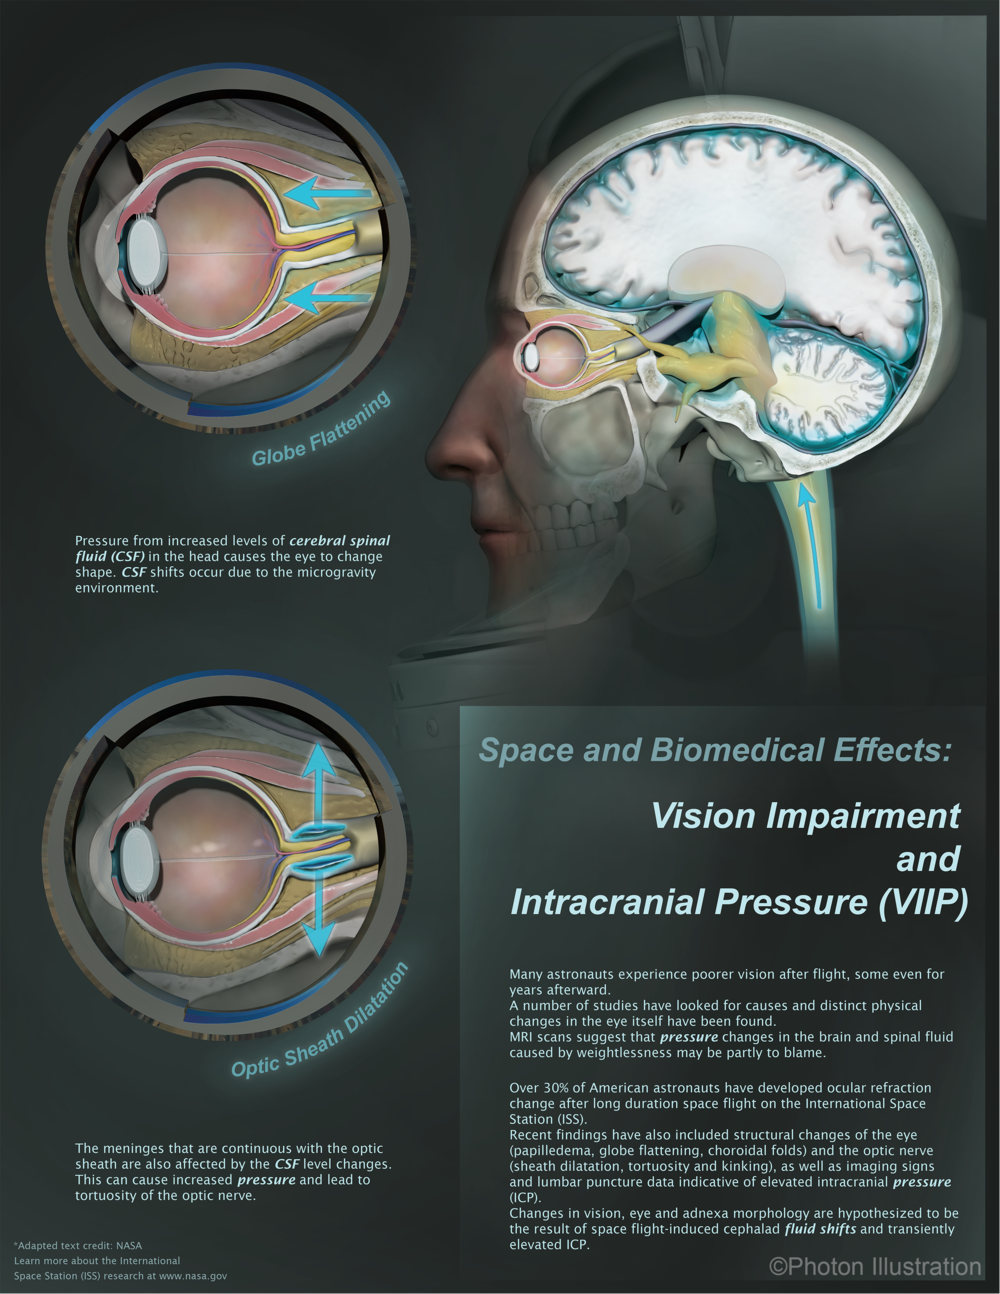 Vision Impairment and Intracranial Pressure